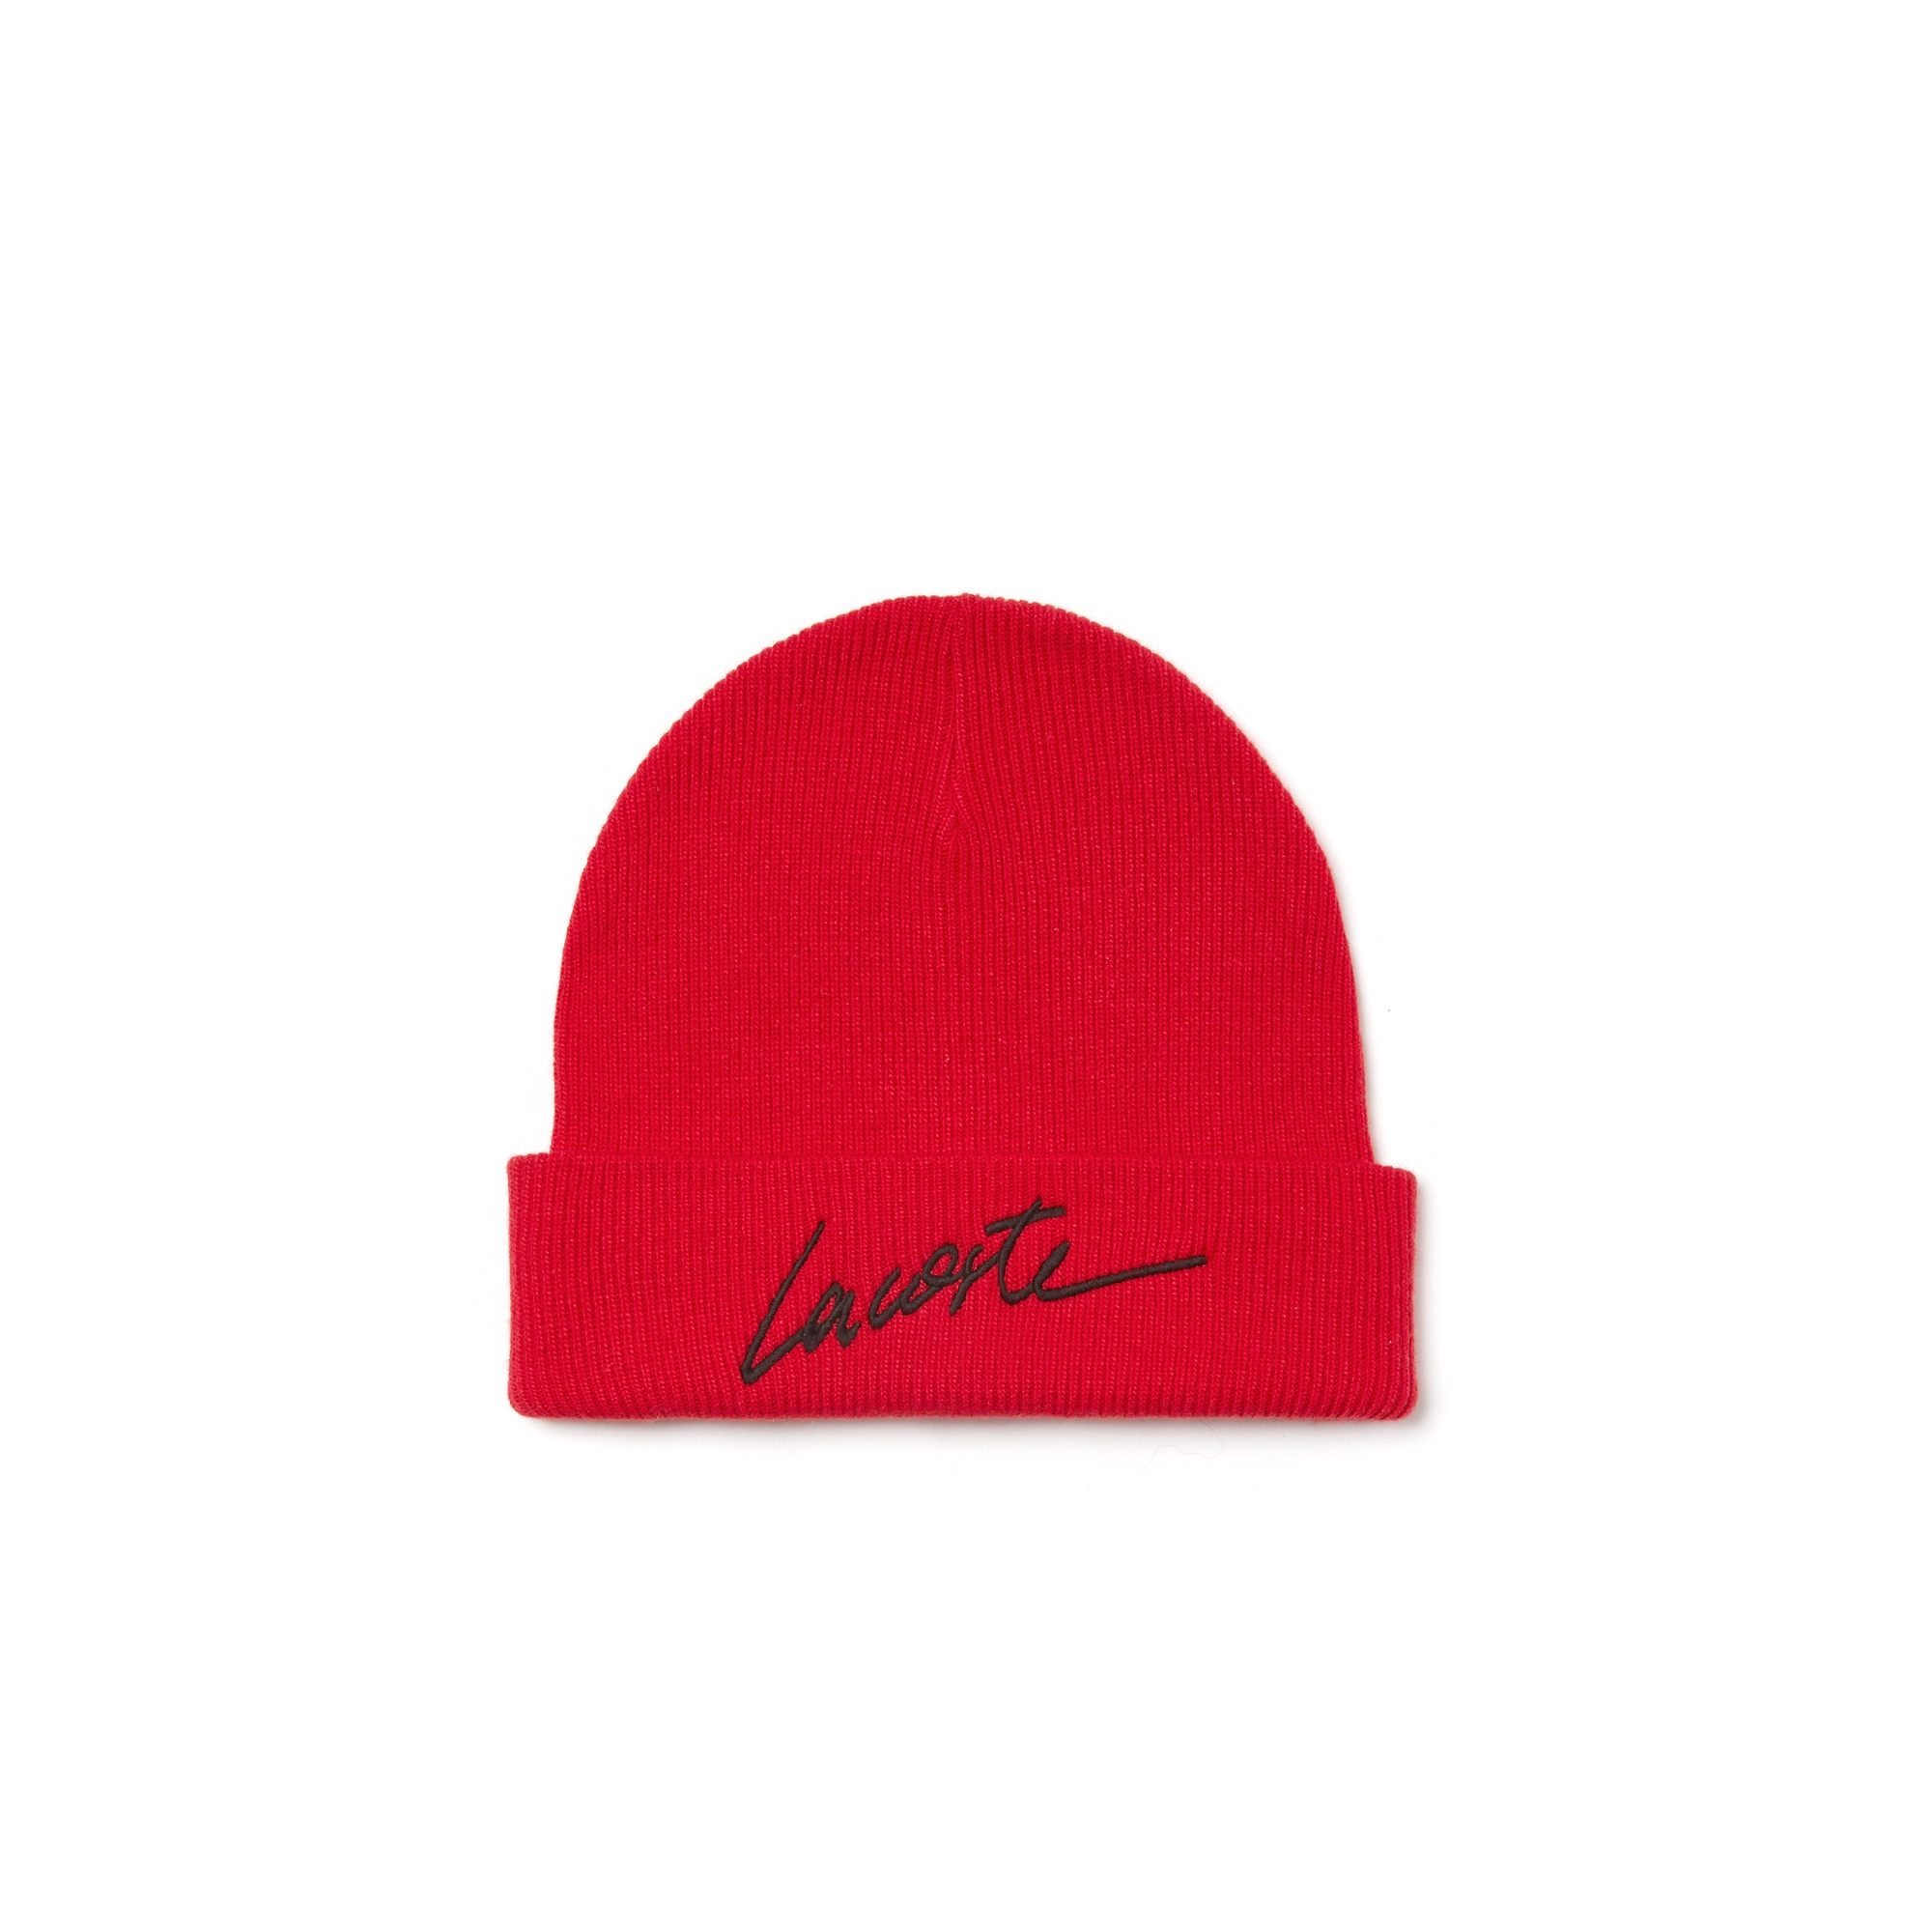 Unisex 라코스테 Lacoste LIVE Turned Edge Ribbed Wool Beanie,red/black